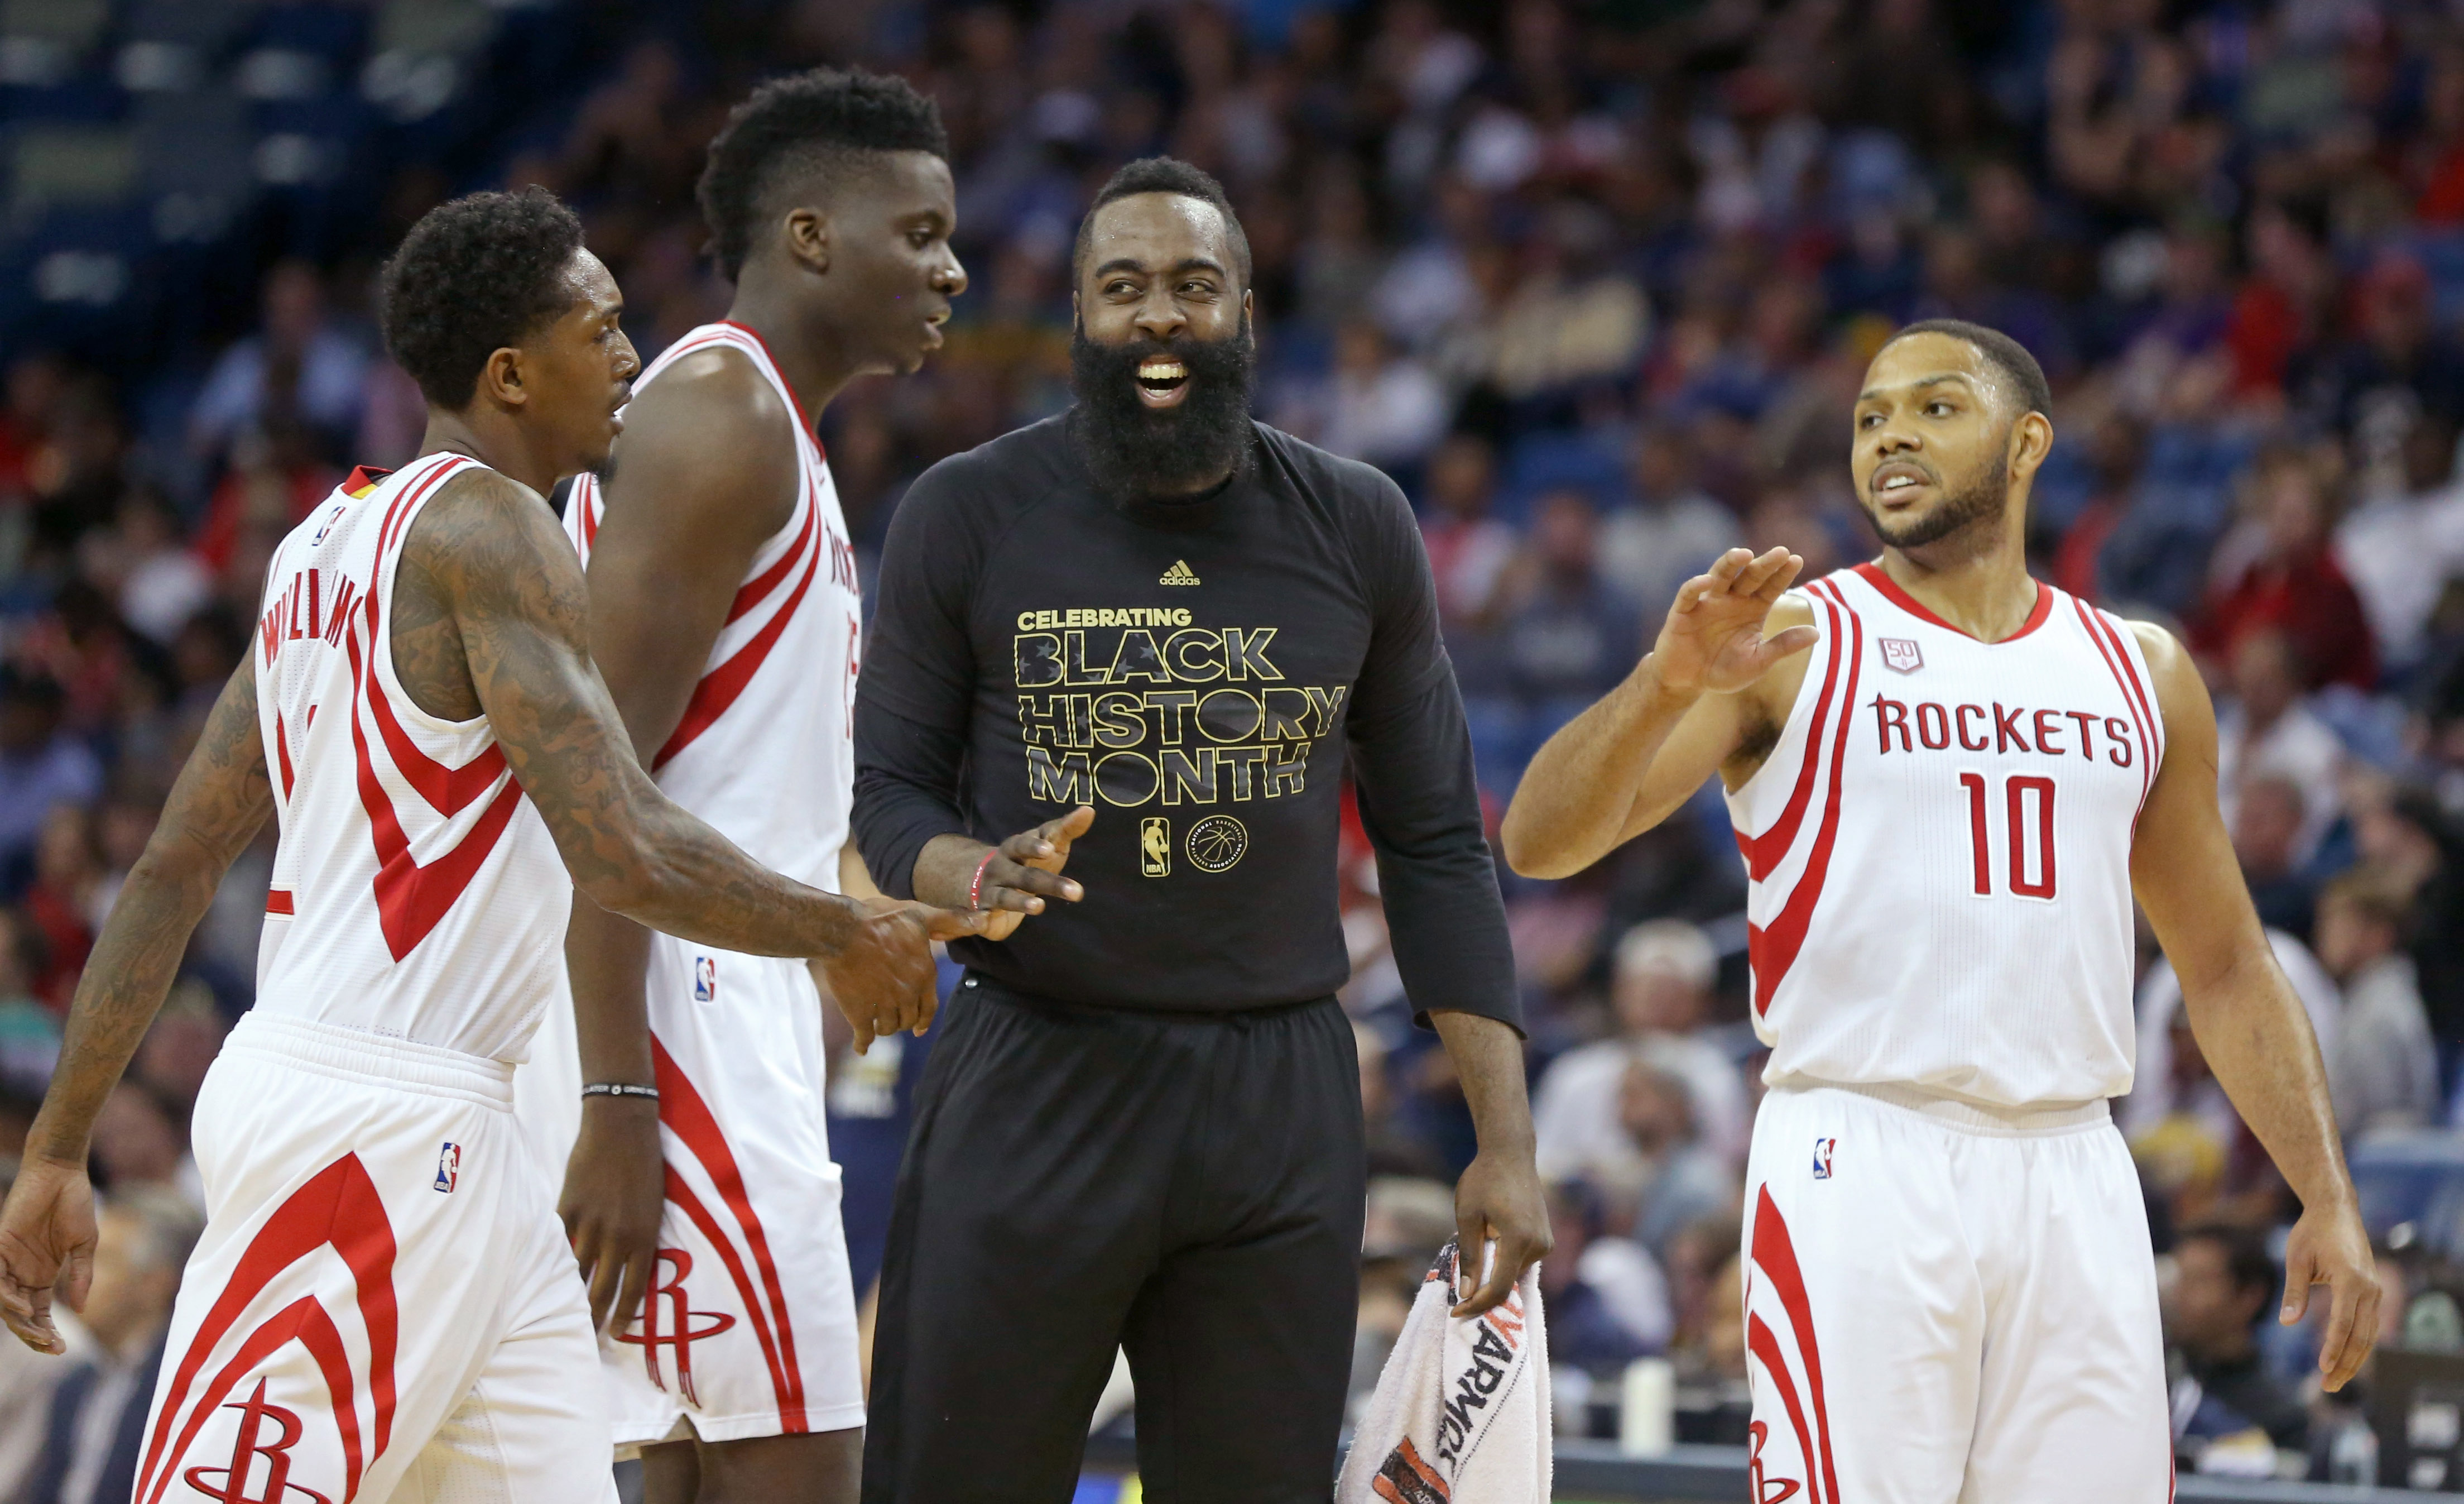 9896599-nba-houston-rockets-at-new-orleans-pelicans